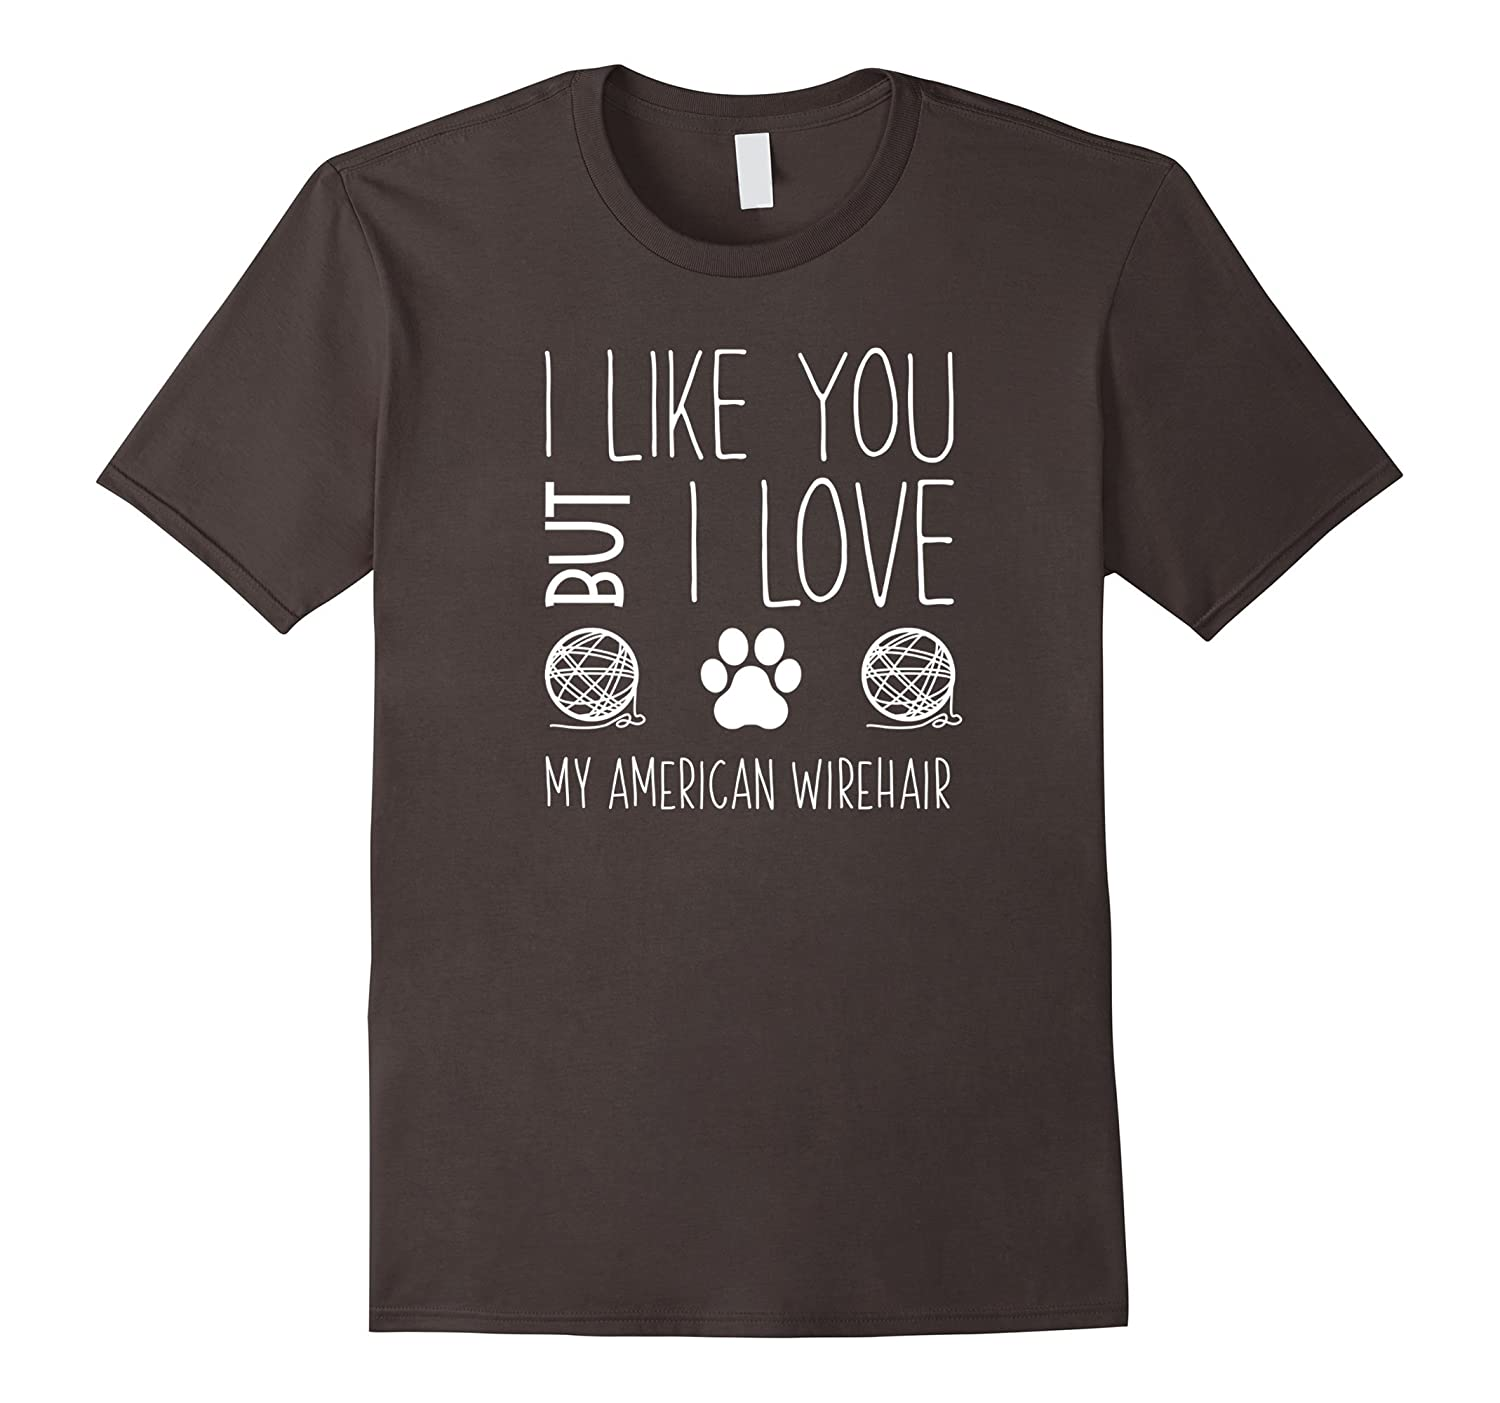 Amazon.com: I Like You but I Love My American Wirehair: Clothing